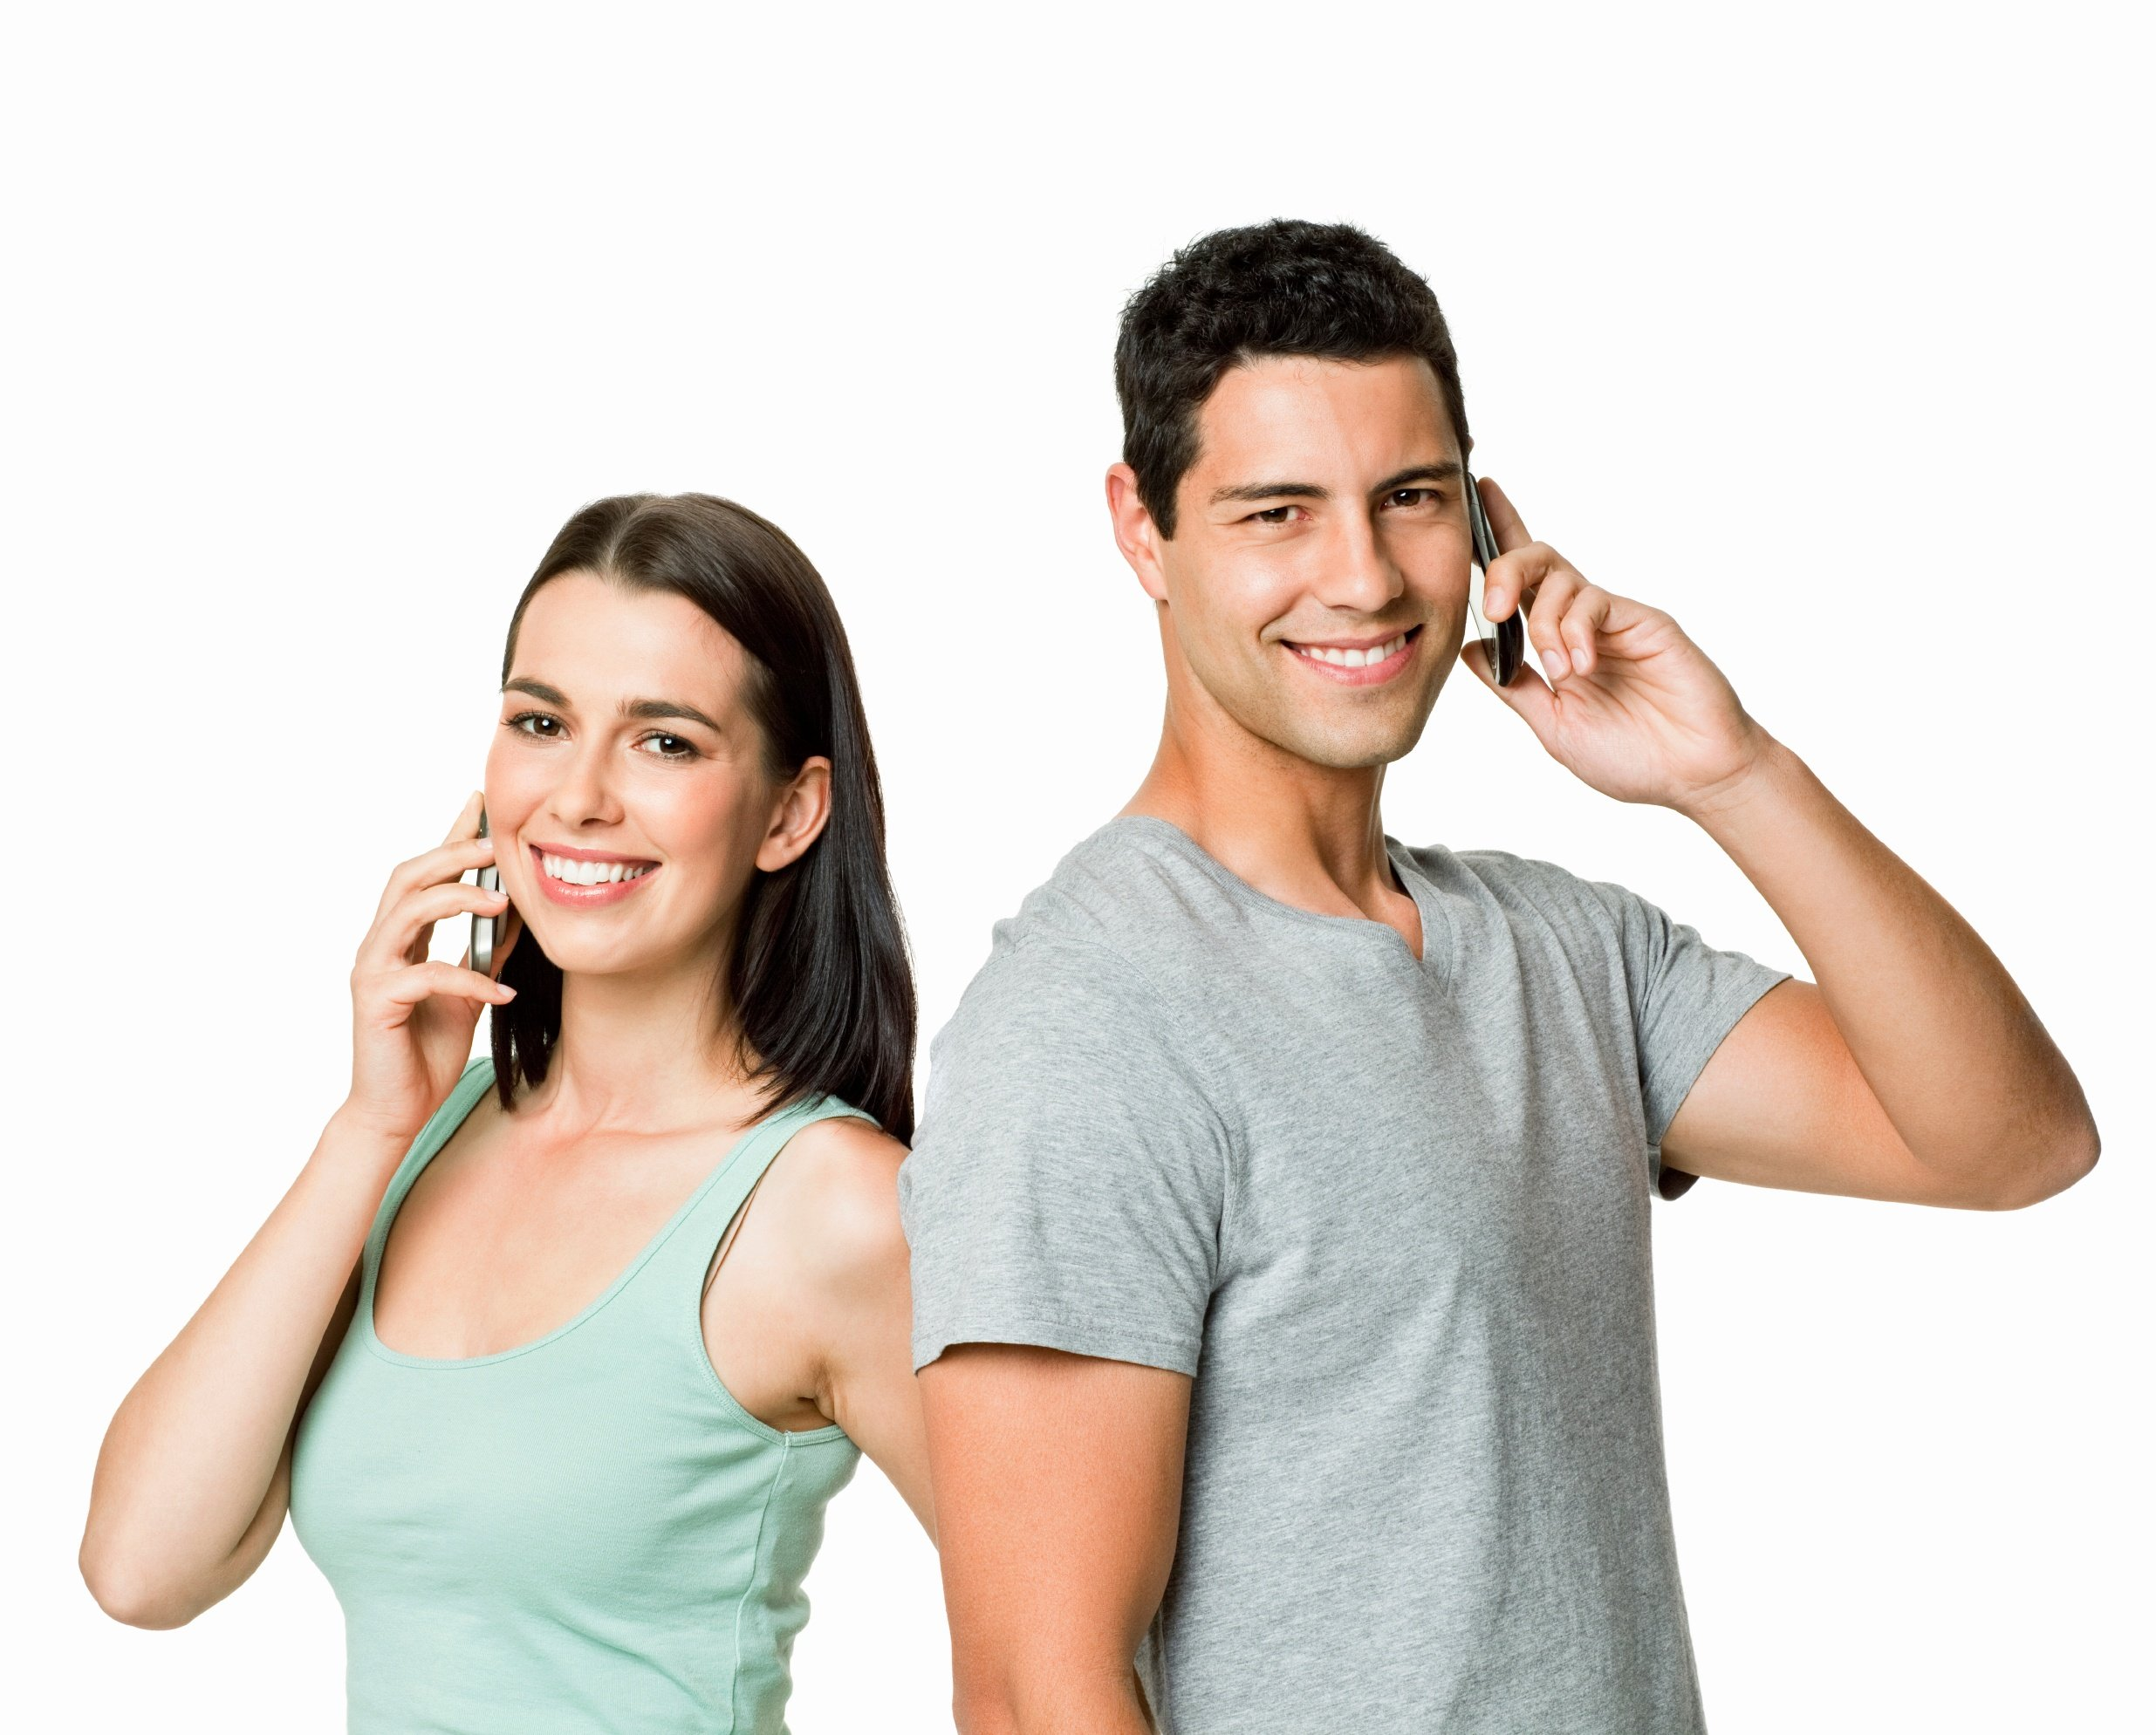 couple with phones to ears.jpg